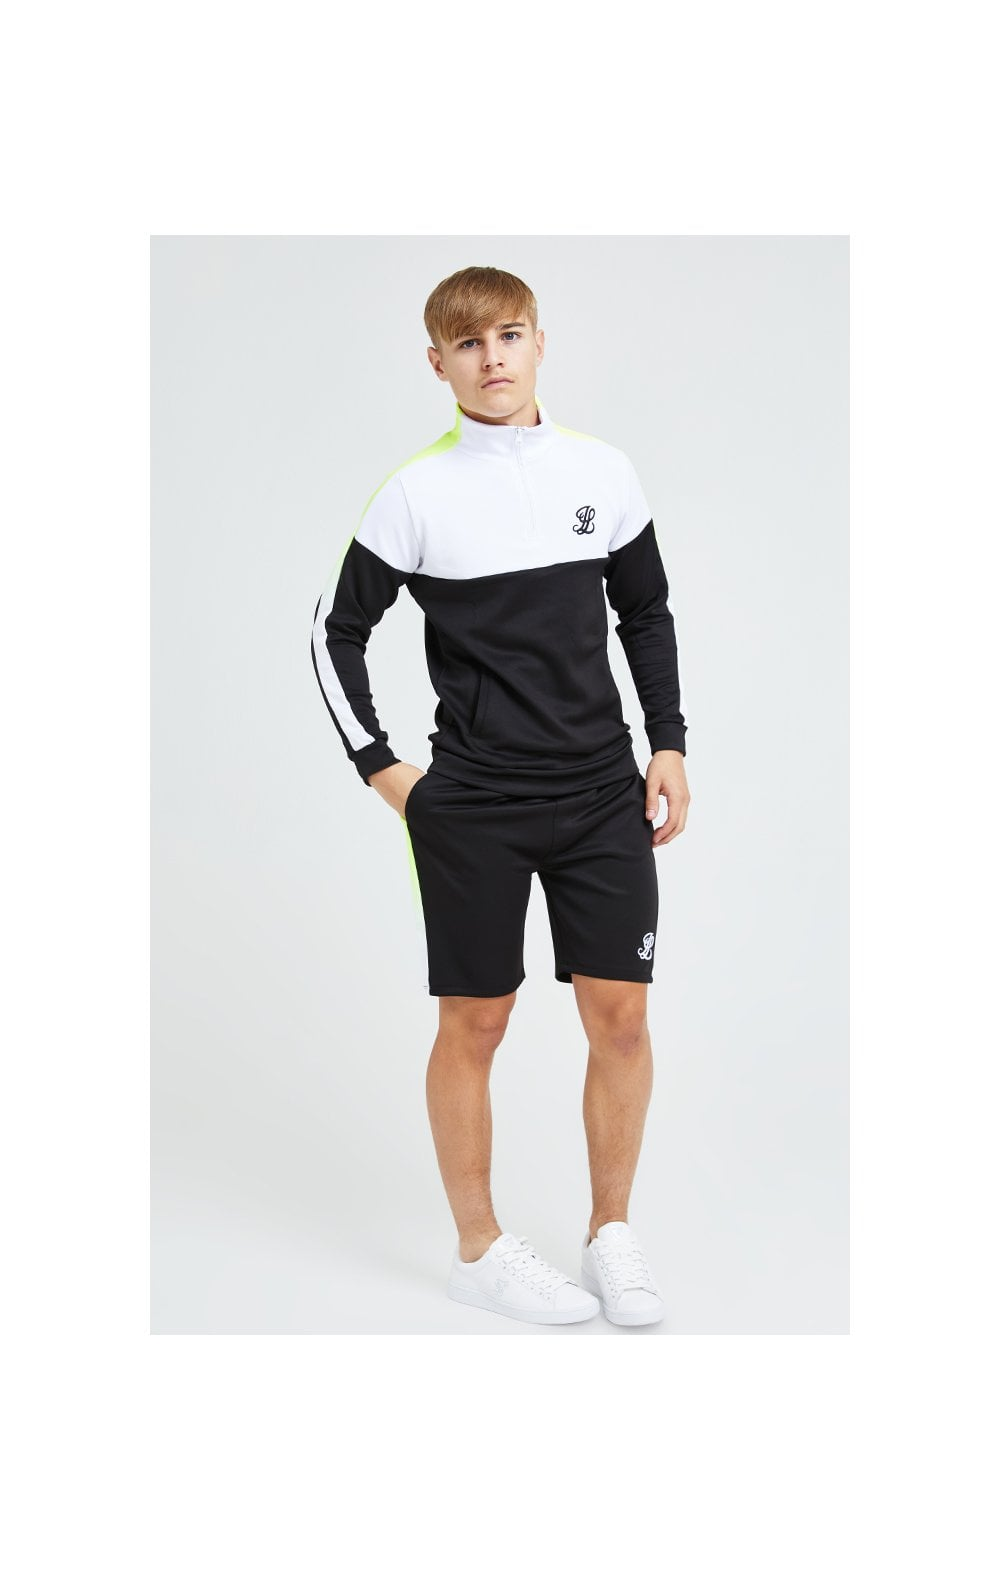 Load image into Gallery viewer, Illusive London Fade Funnel Neck Hoodie - Black,White & Neon Yellow (7)